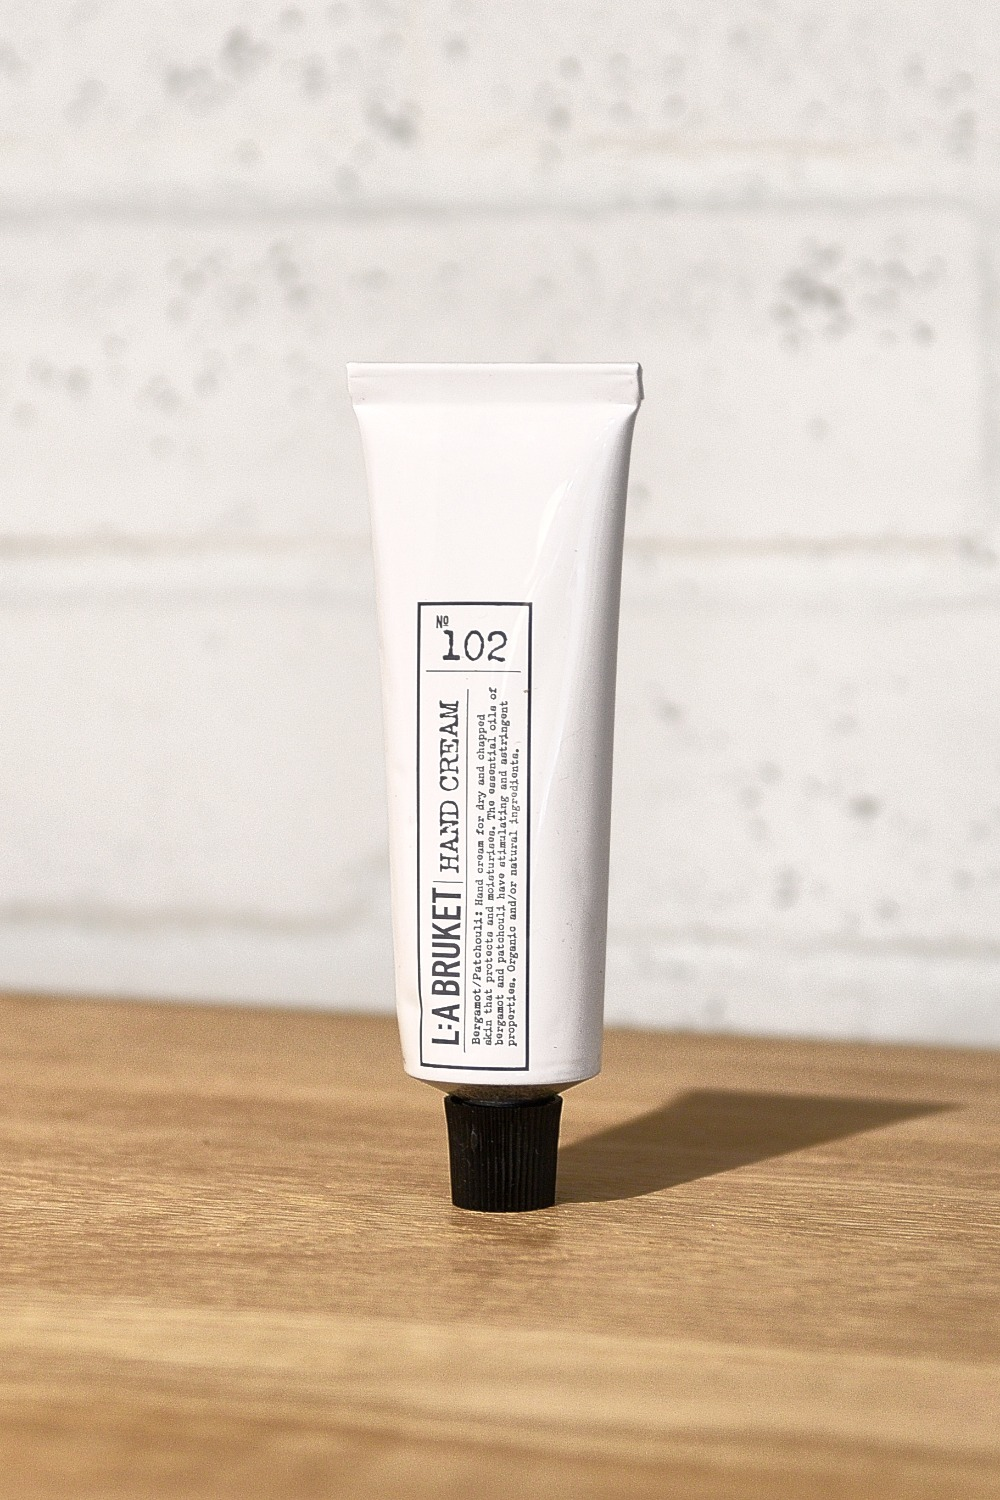 102 Hand Cream (30mg) - Bergamot/Patchouli